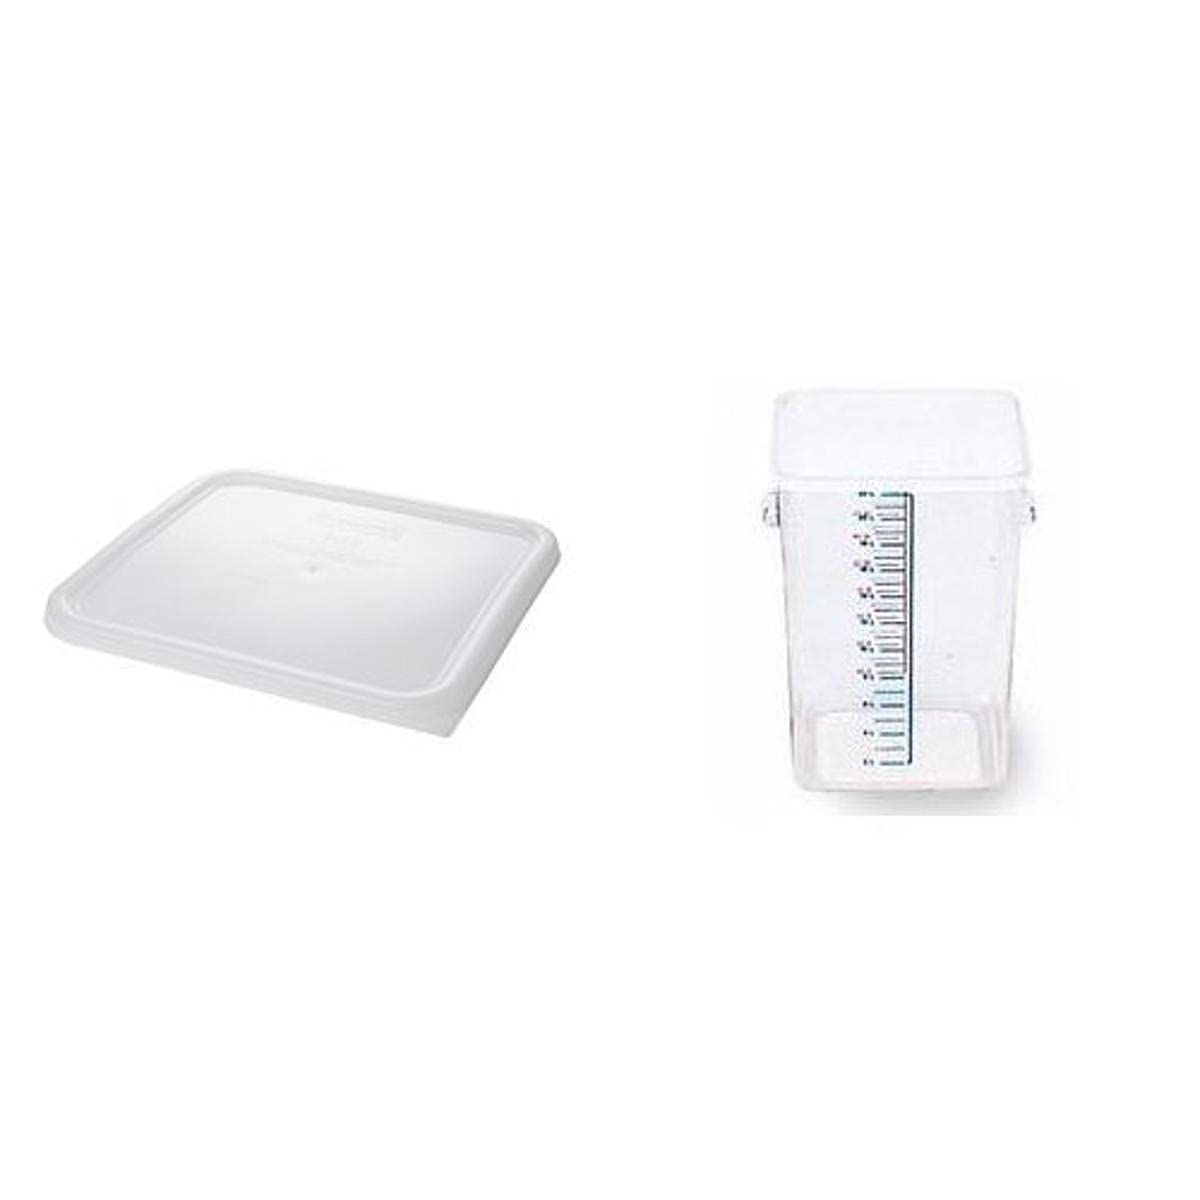 Rubbermaid Commercial Space Saving Food Service Container with Lid, 22-Quart, Clear, FG631800 and FG632200